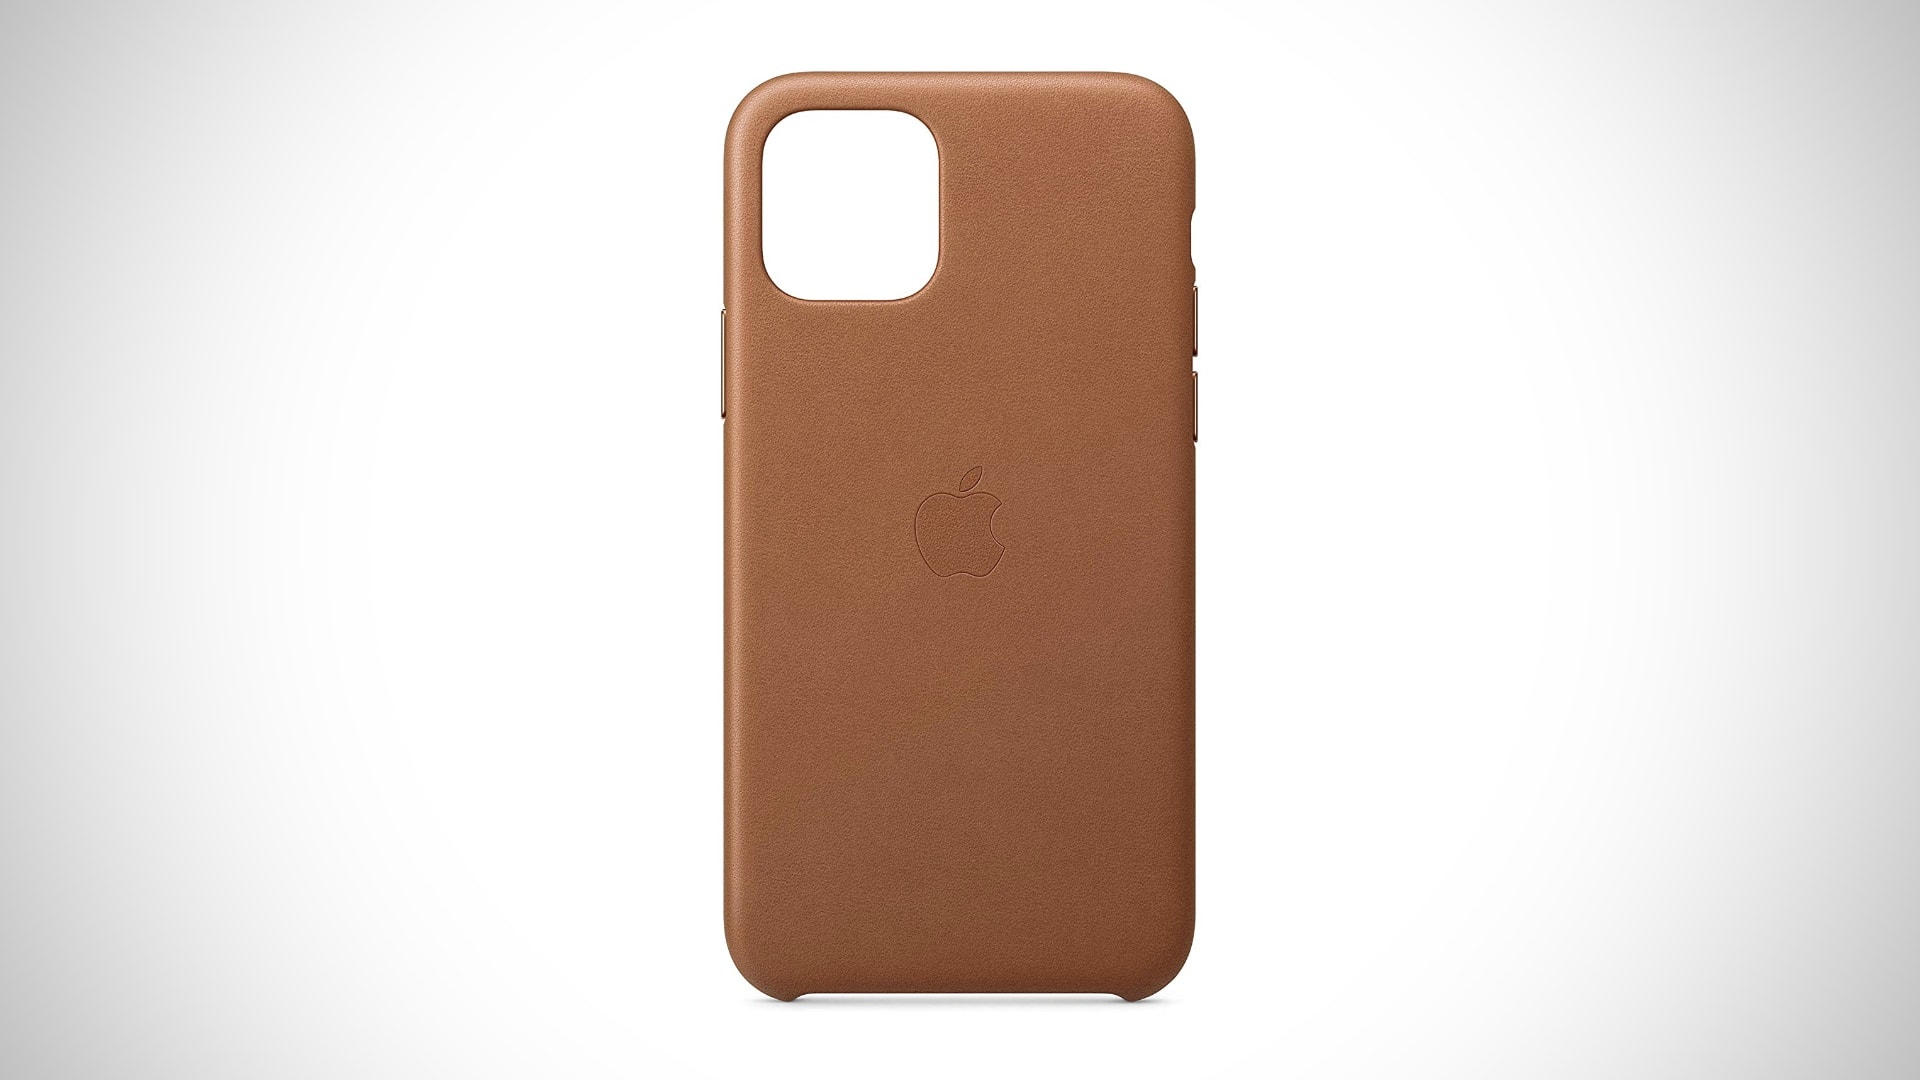 Apple Leather Case for iPhone